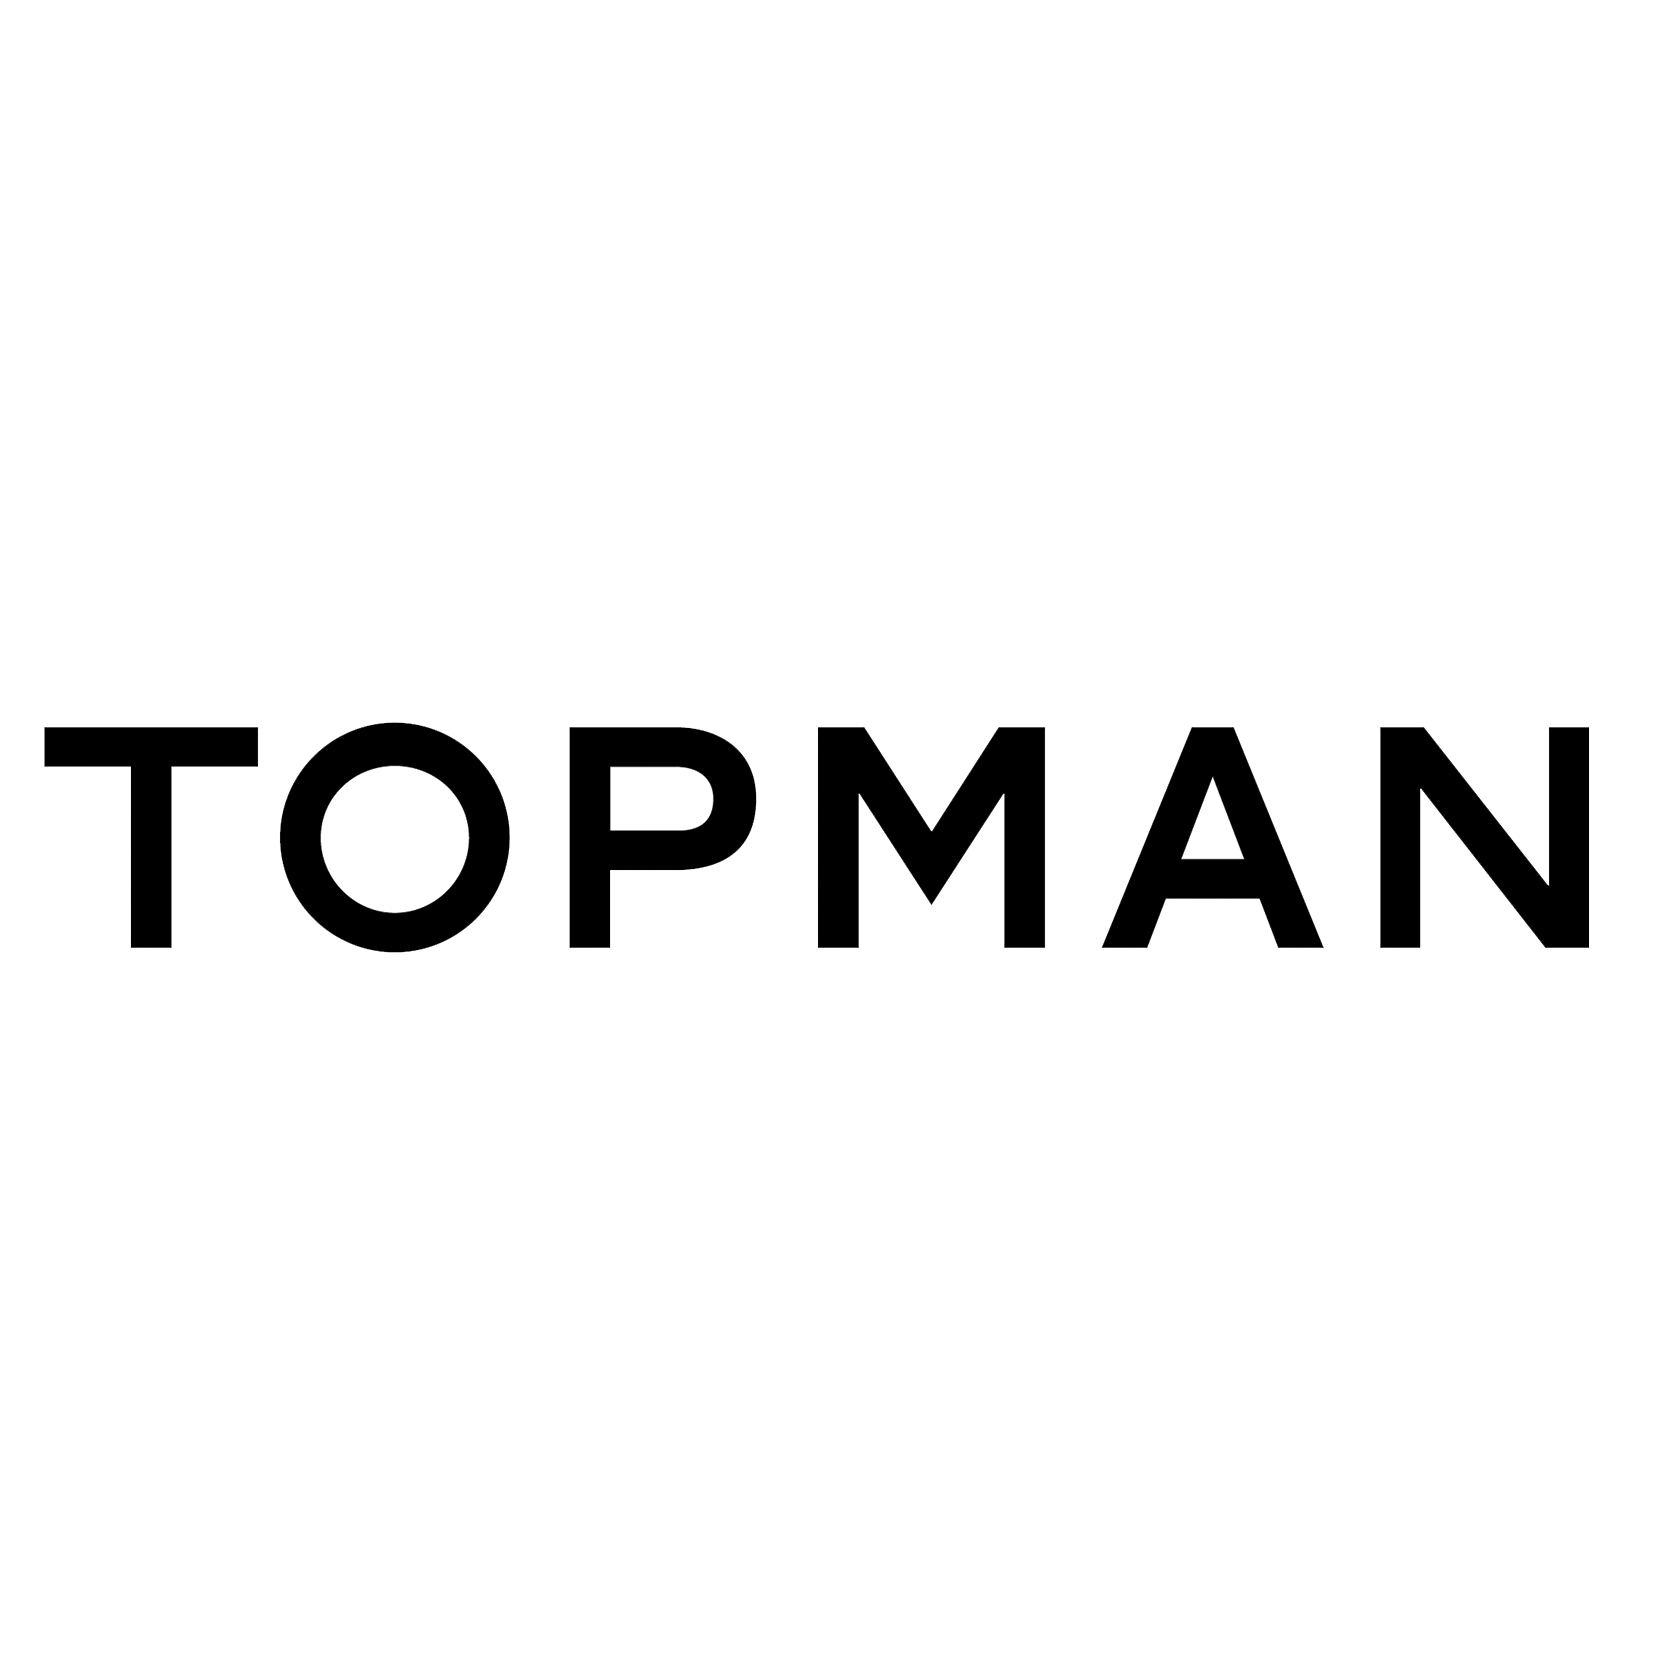 Topman likes to reward their social media followers by providing occasional coupon codes on their Twitter, Facebook, and Instagram pages. Follow Topman on social media to make sure that you're able to partake in these exclusive discounts. Check out the Style & Stuff blog to learn more about the fashions that are offered at vegamepc.tk